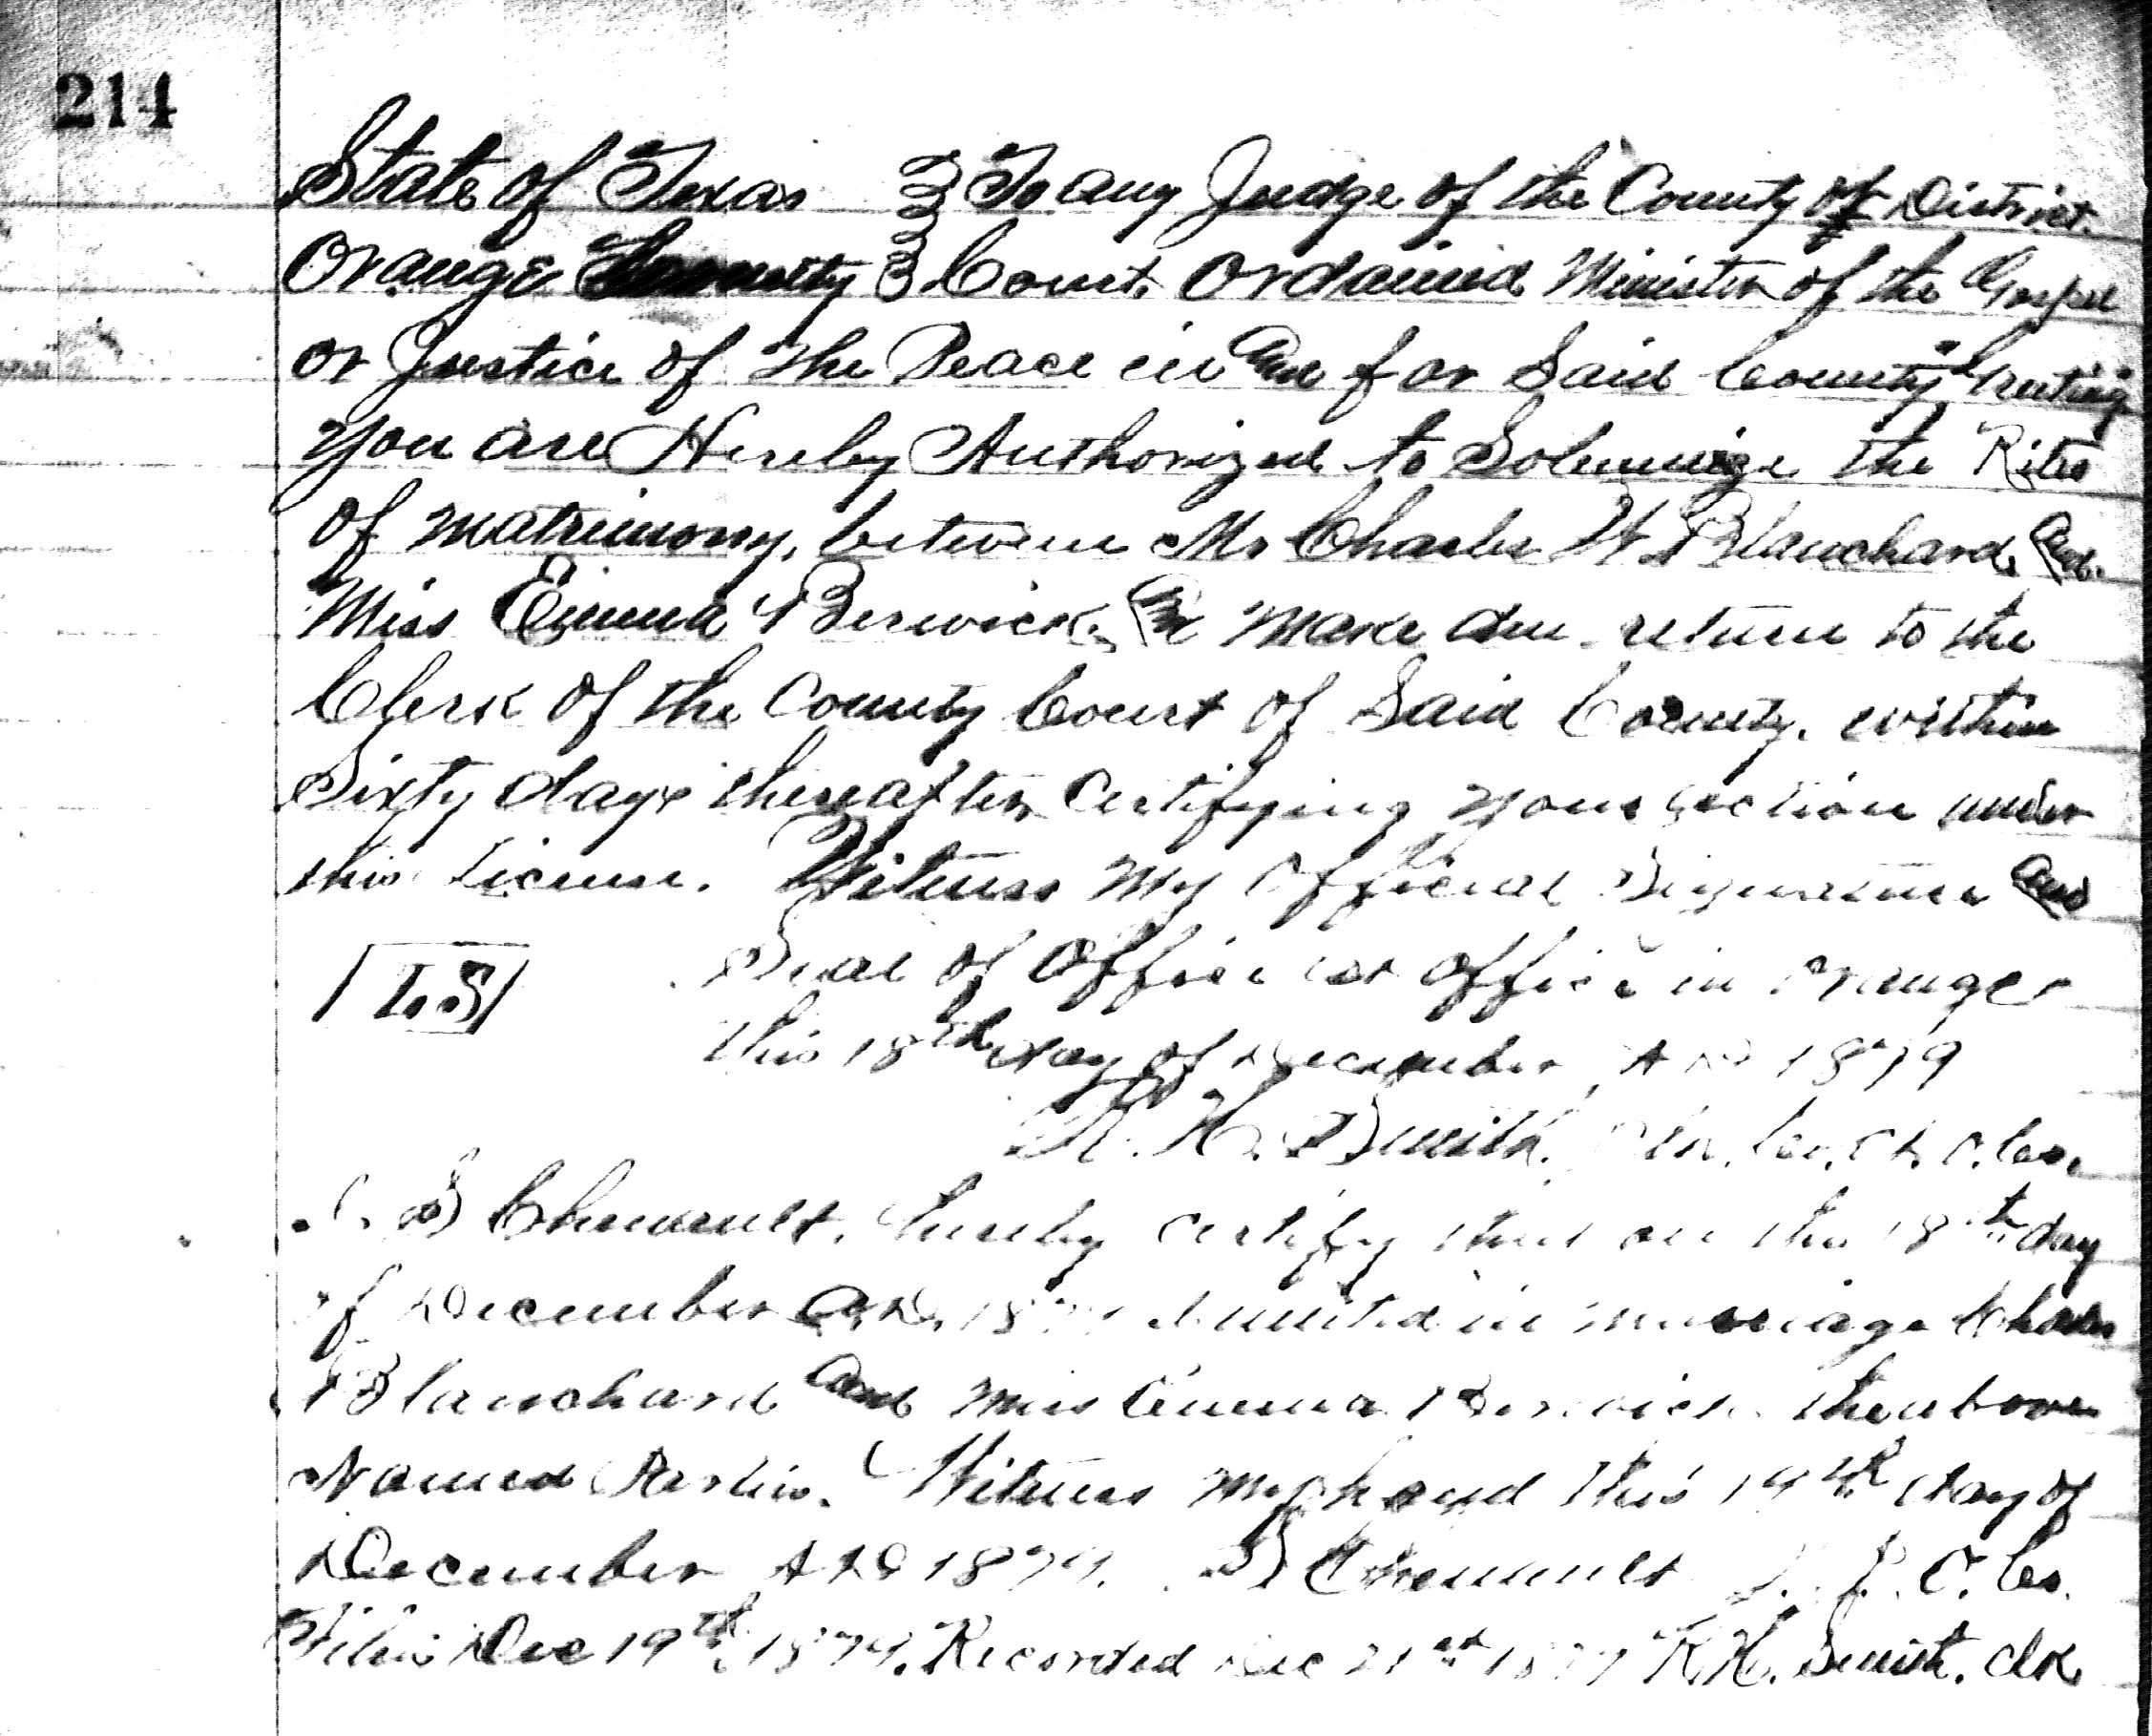 Charles William Blanchard Marriage License View Media Ancestry